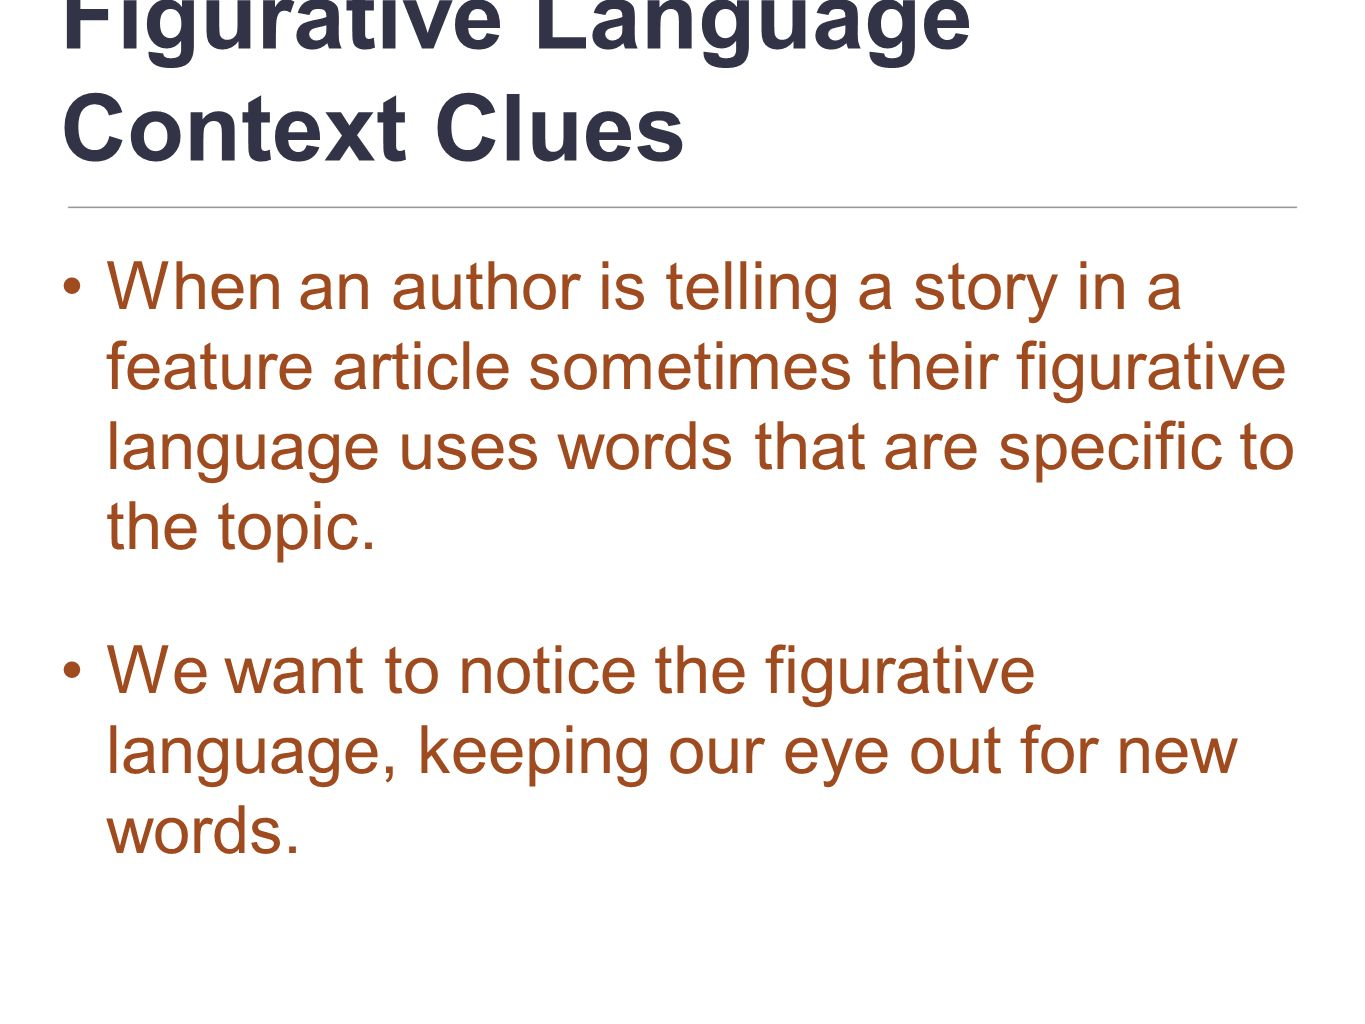 Figurative Language Context Clues